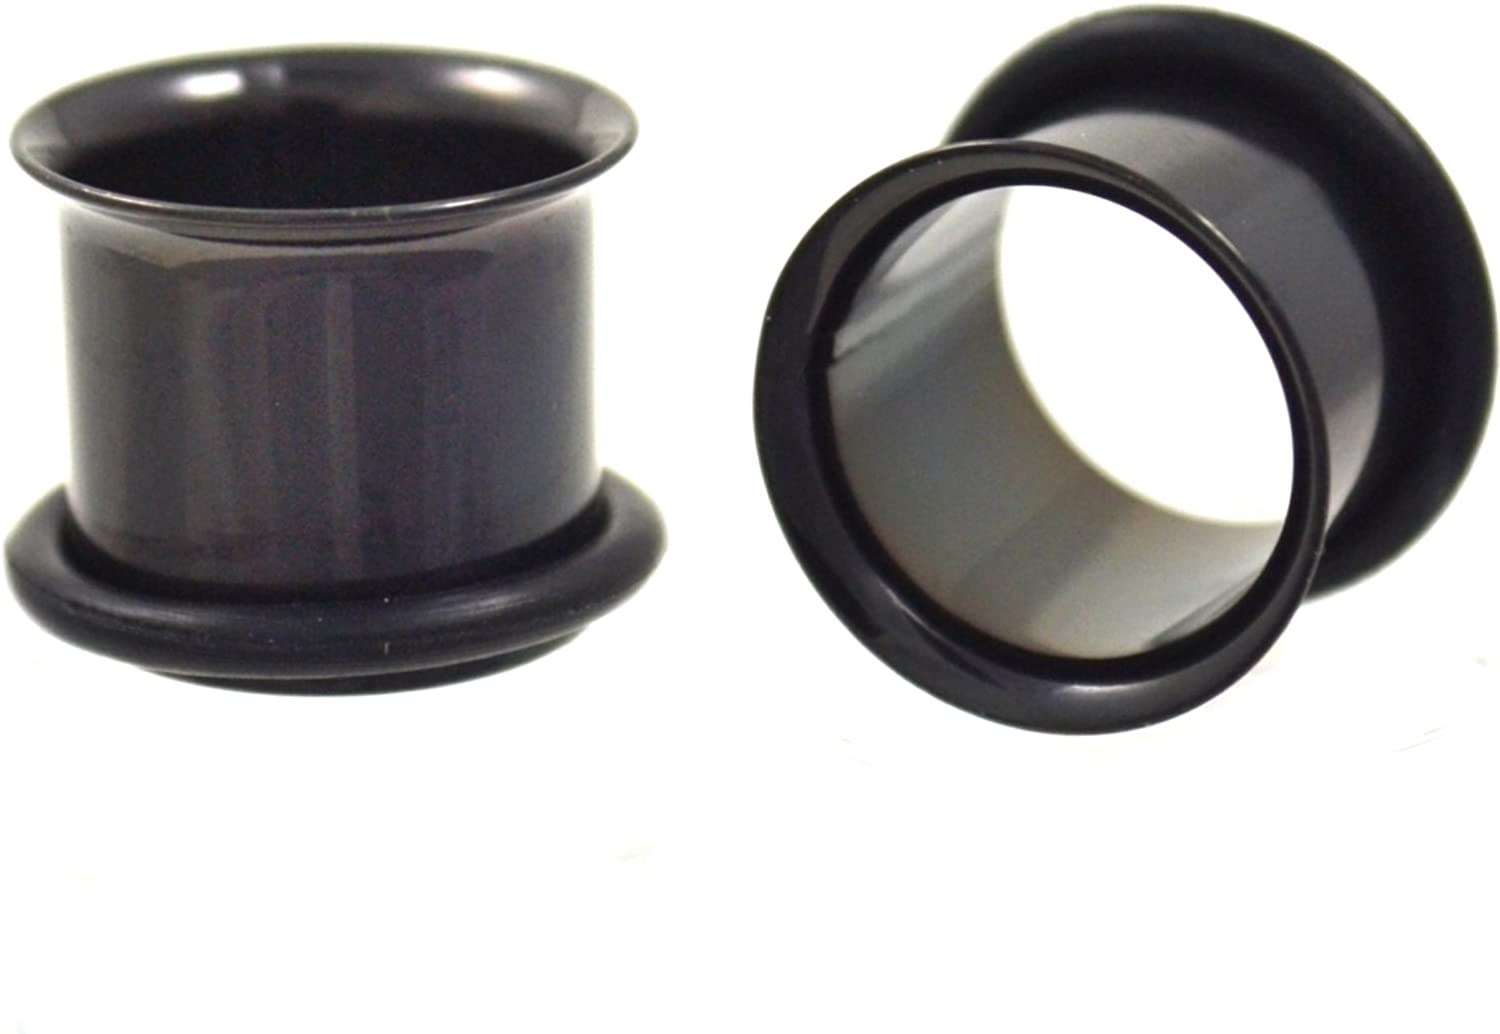 Pair of Single Flared All Black Titanium Plated Ear Tunnels Piercing Eyelets Plugs - 00G 10MM